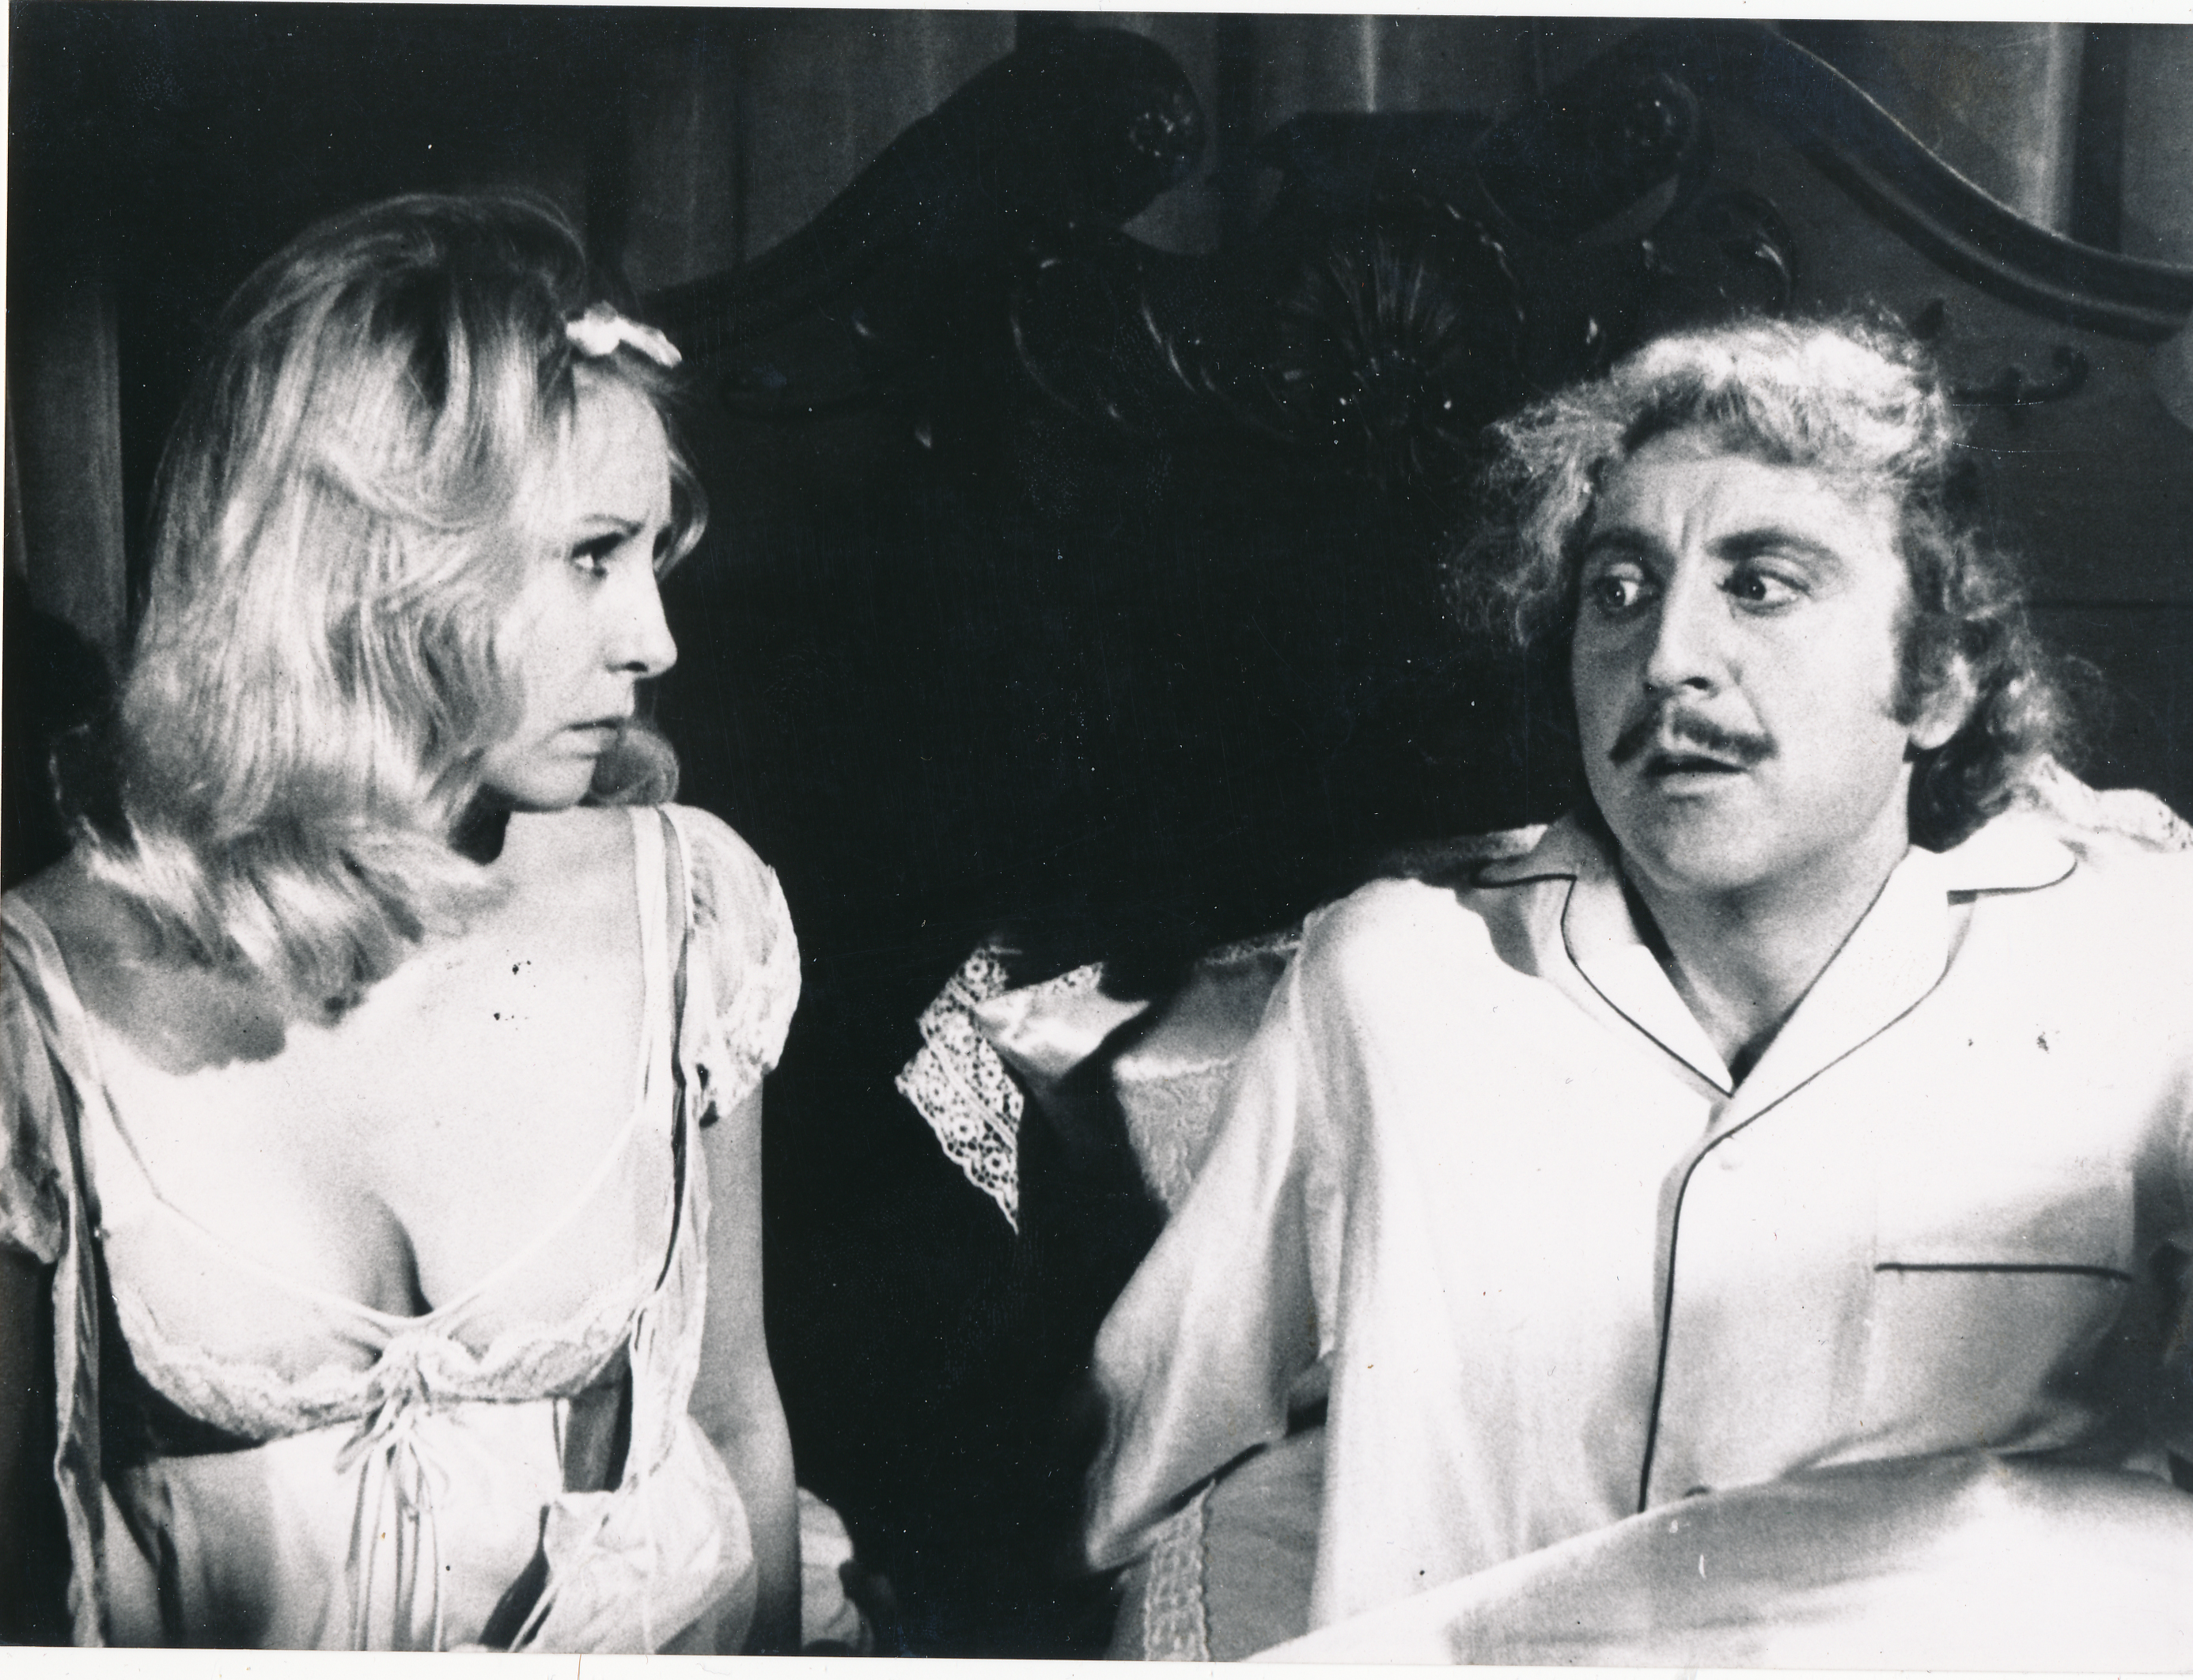 Pictured is a black-and-white still for the 1974 Mel Brooks film Young Frankenstein starring Gene Wilder and Teri Garr.